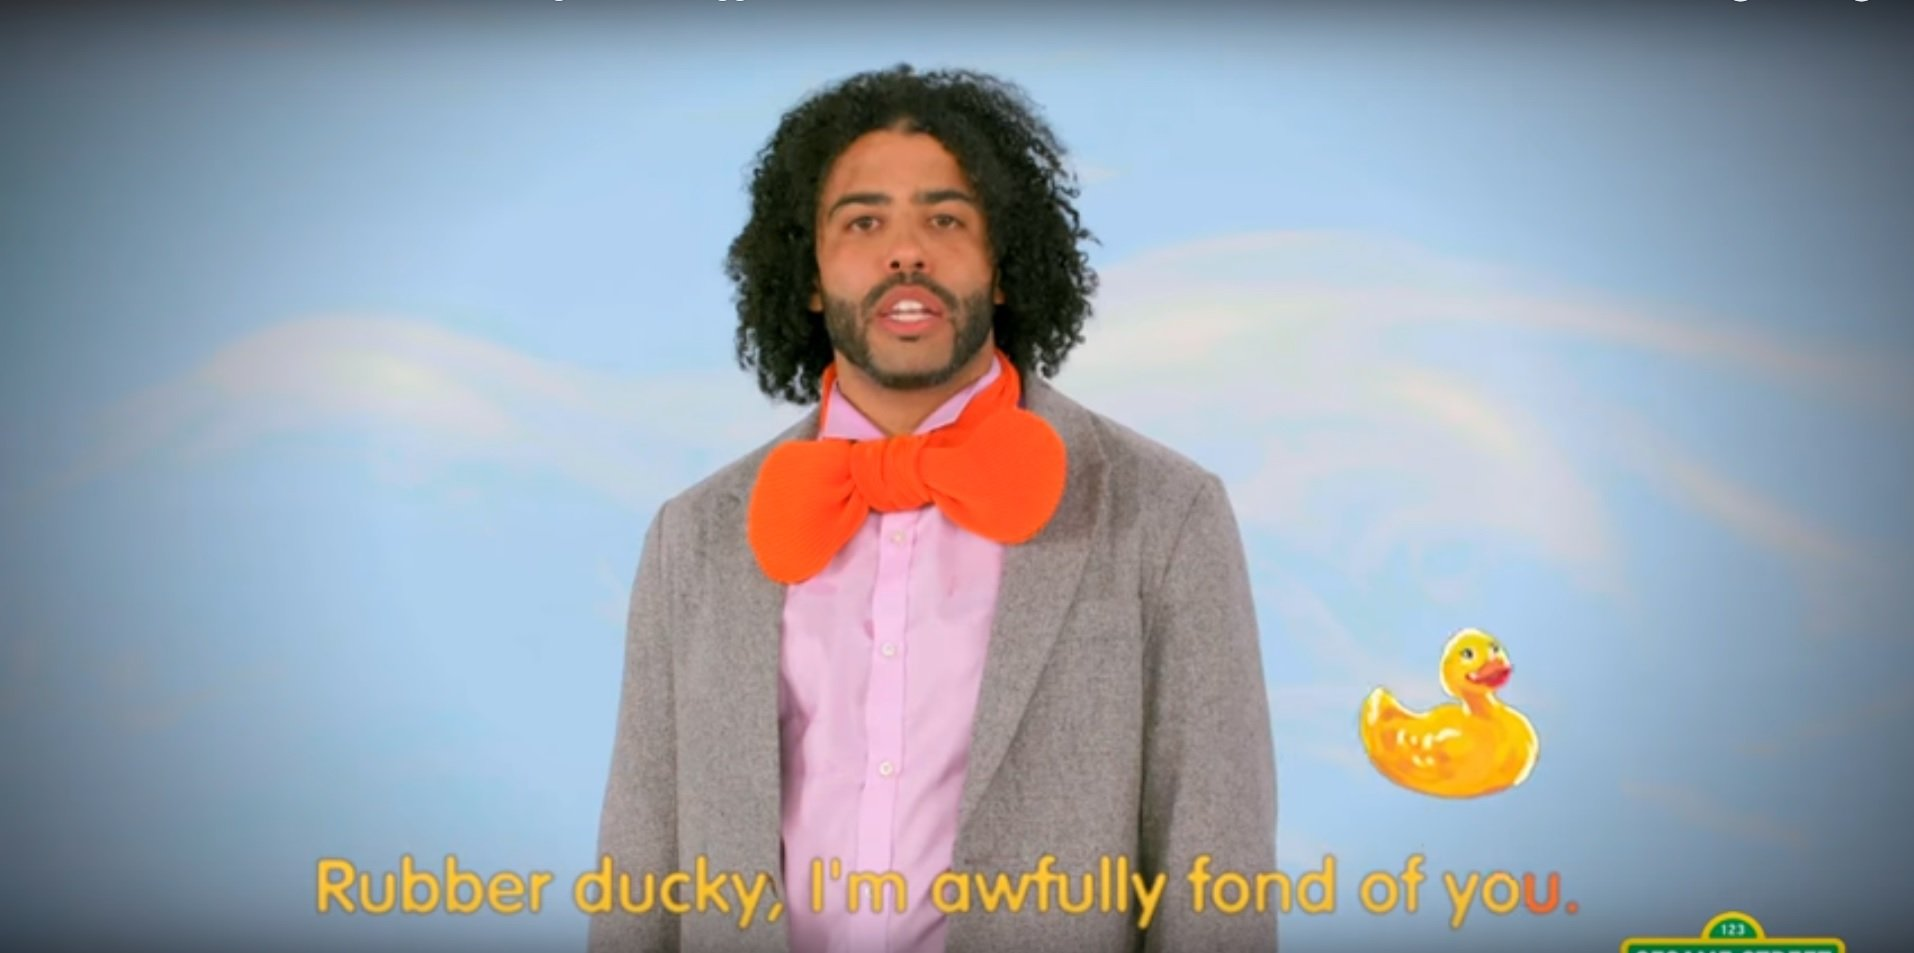 Daveed Diggs Shows Love For Rubber Ducky On Sesame Street